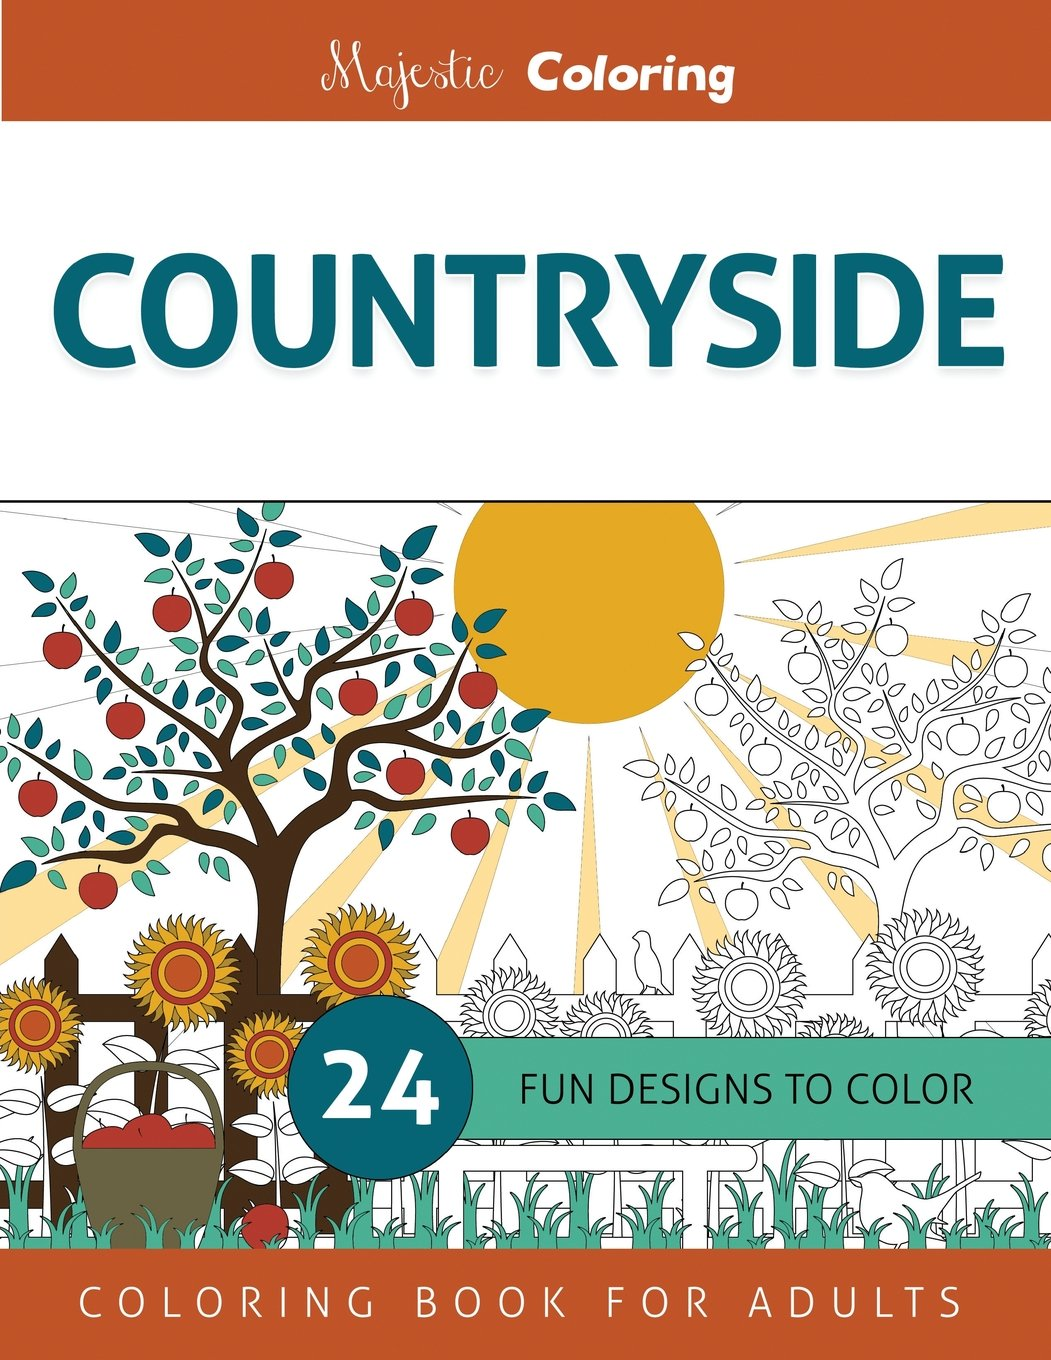 Countryside: Coloring Book for Adults